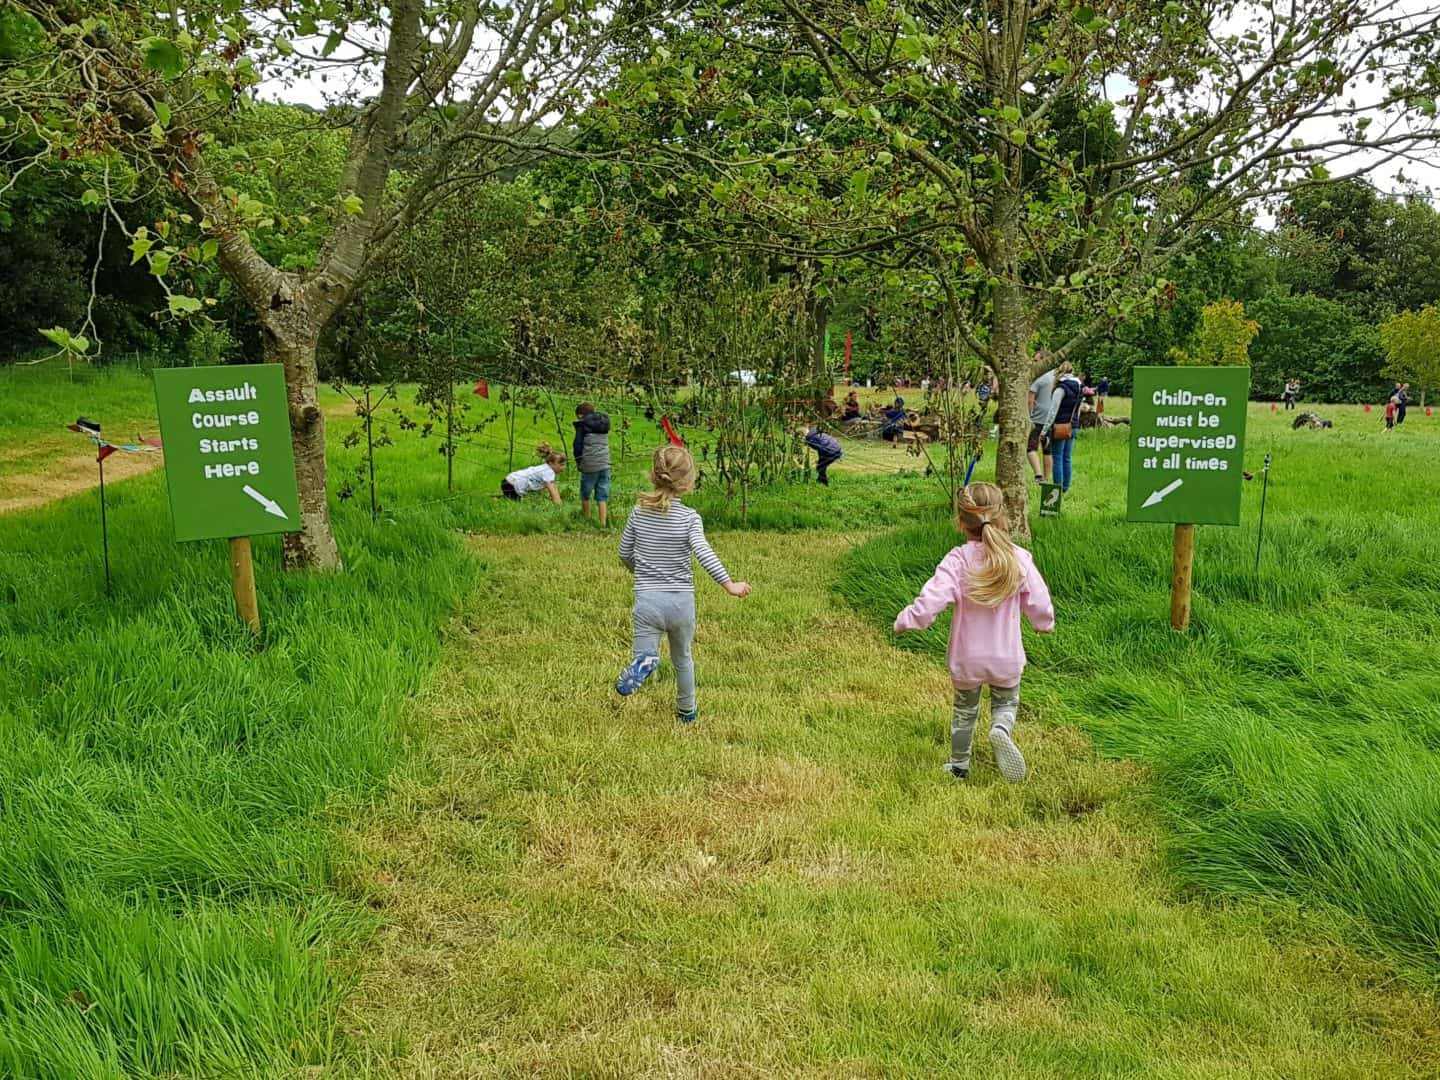 children's obstacle course at Lost Gardens of Heligan